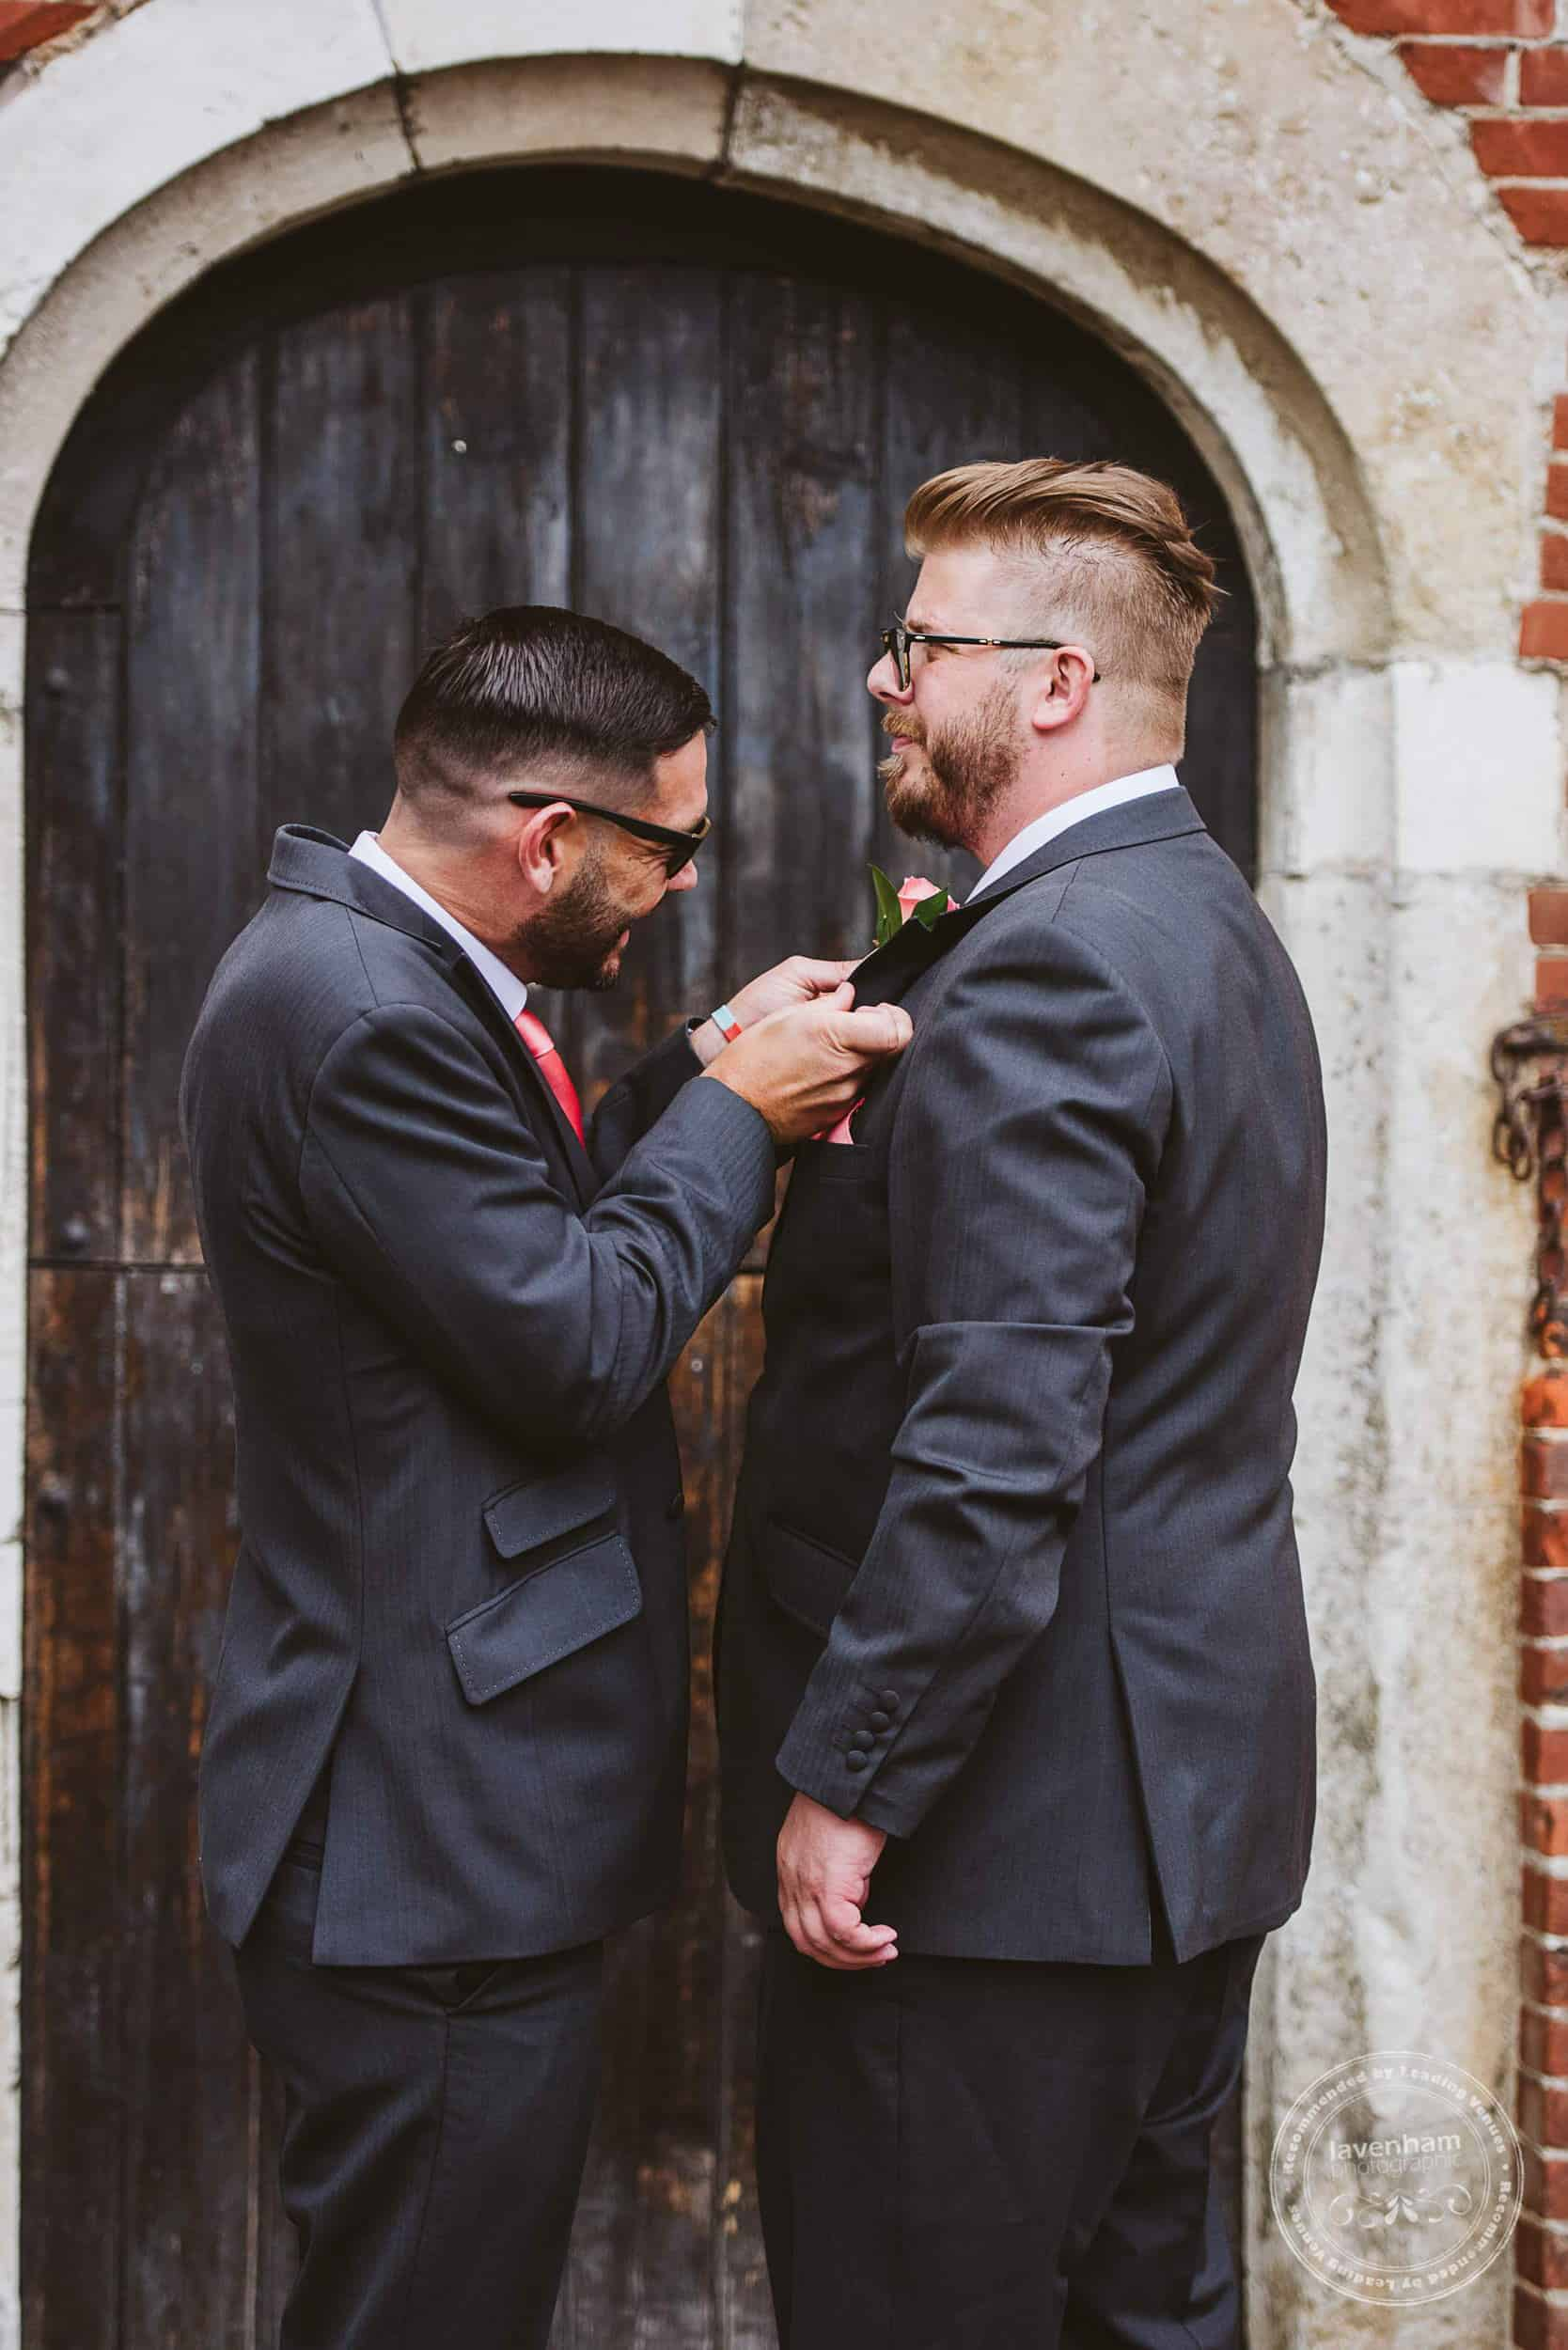 140717 Layer Marney Wedding Photography by Lavenham Photographic 028